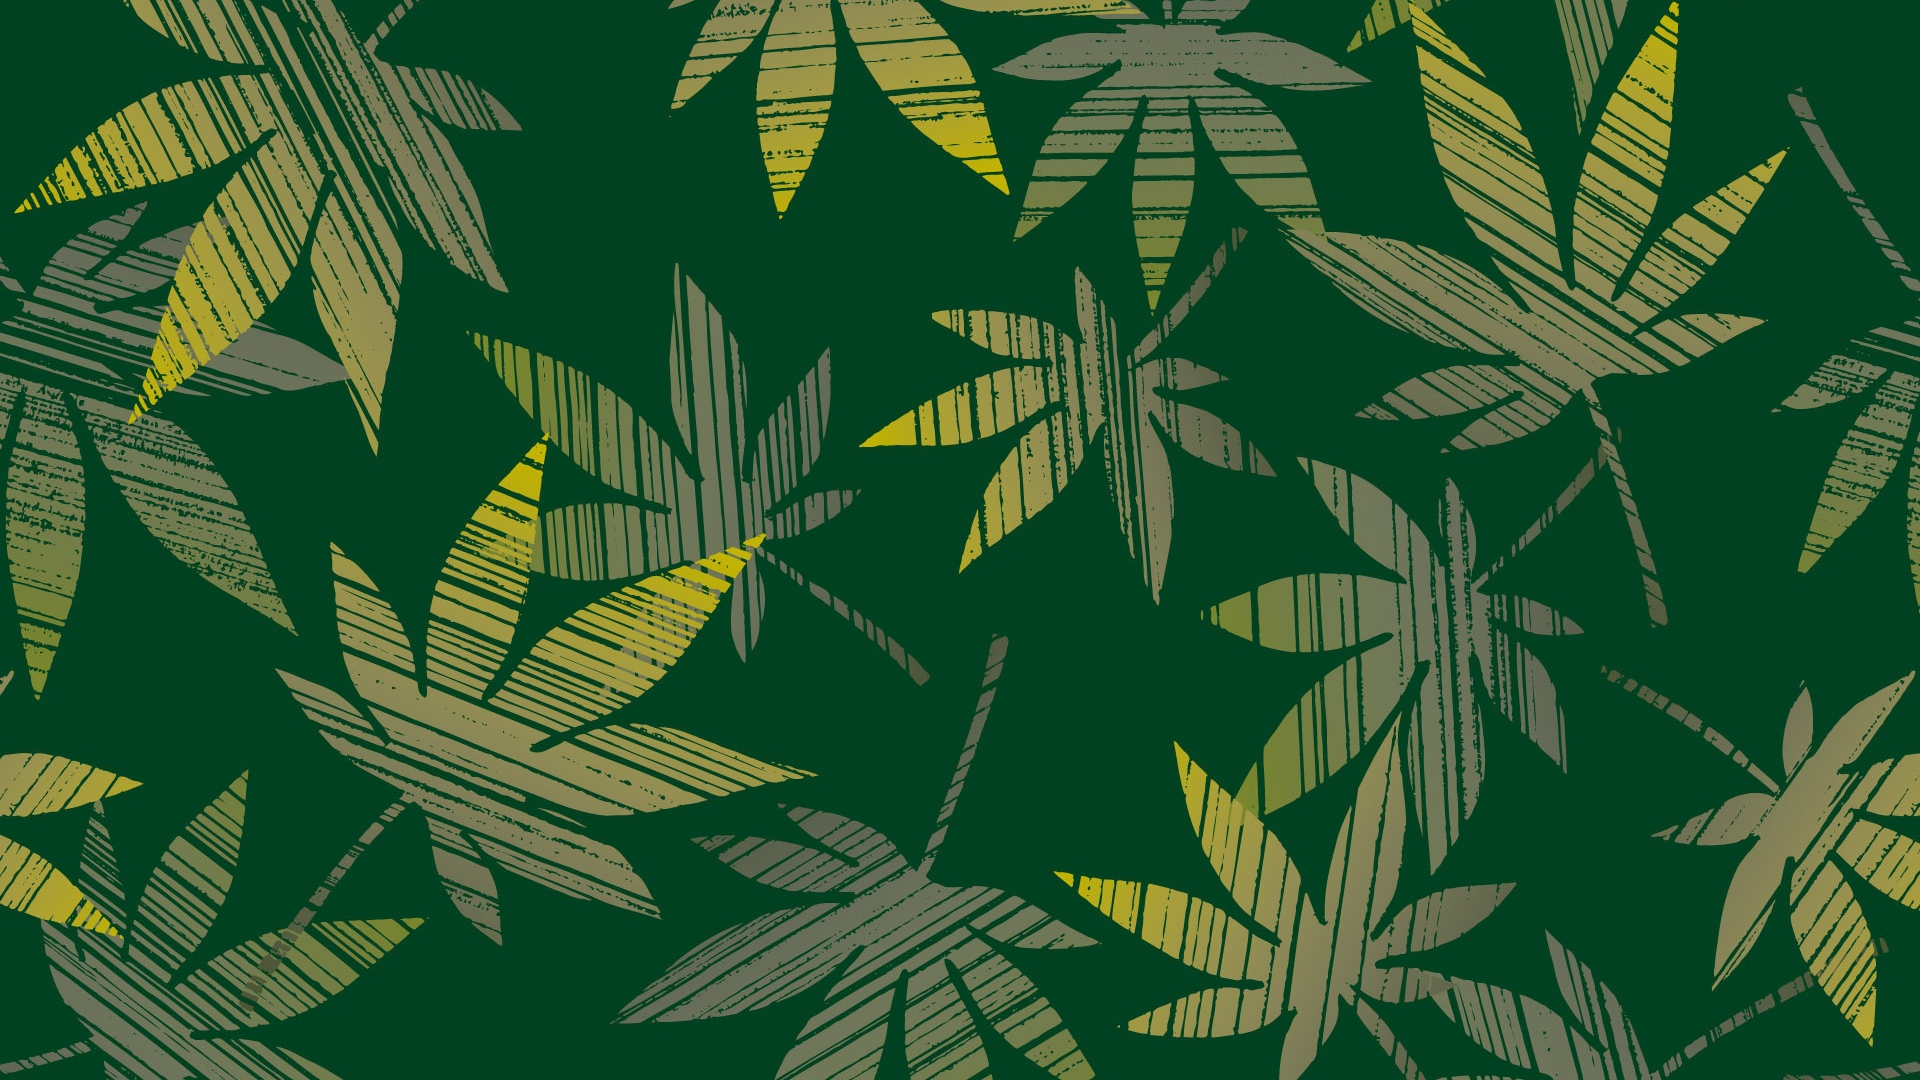 Download Wallpaper 1920x1080 Leaves Cannabis Plants Surface